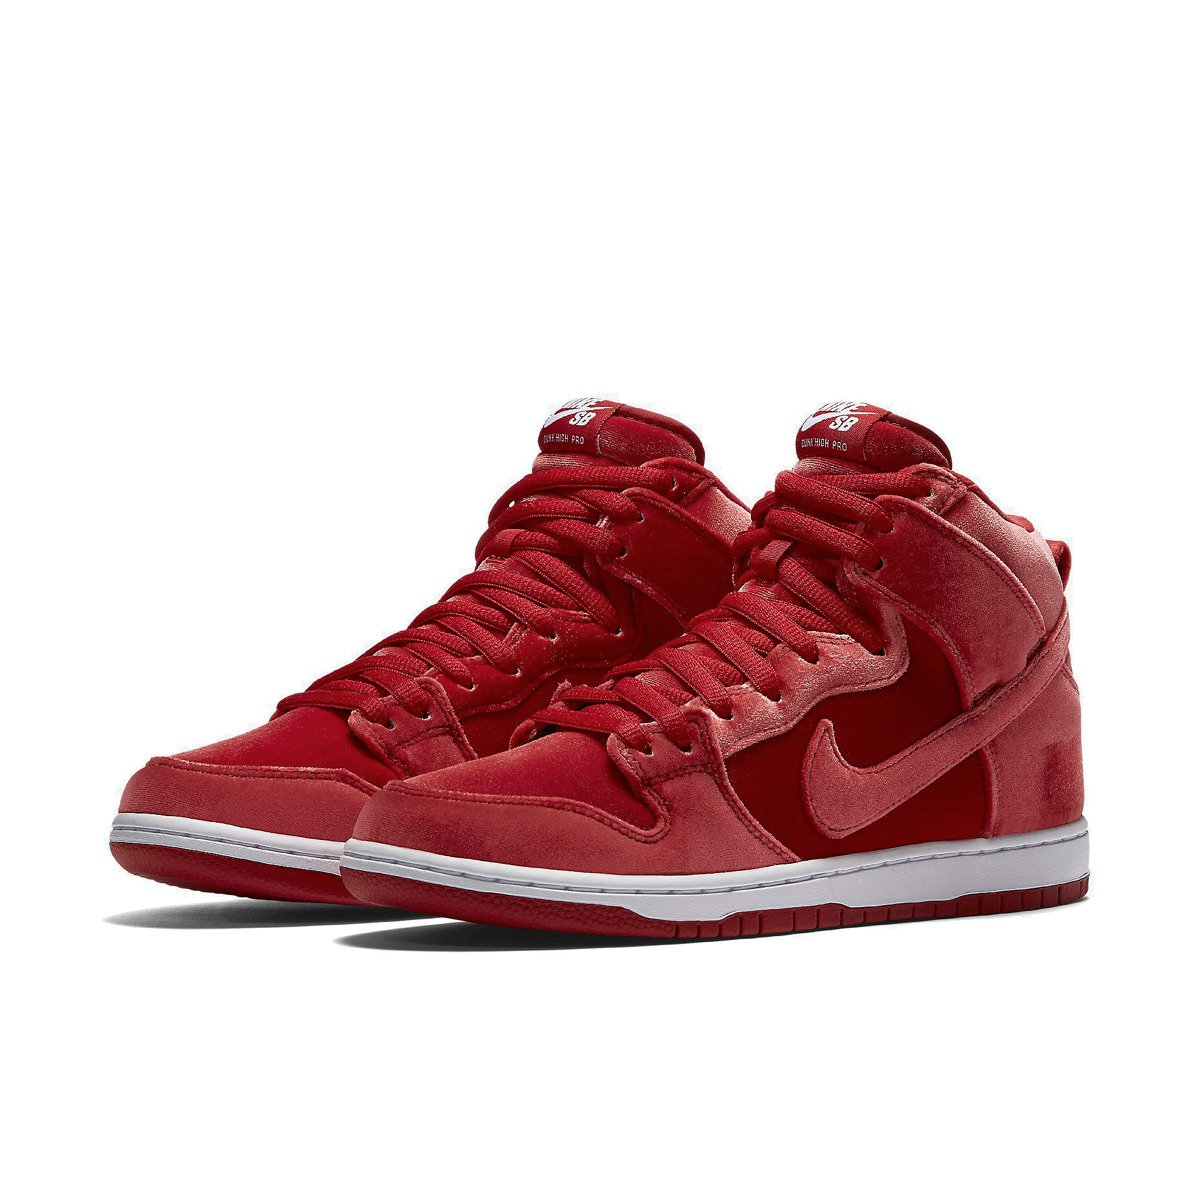 on sale 16f68 f380b ... buty nike dunk high premium sb gym red gym red-white Click to zoom ...